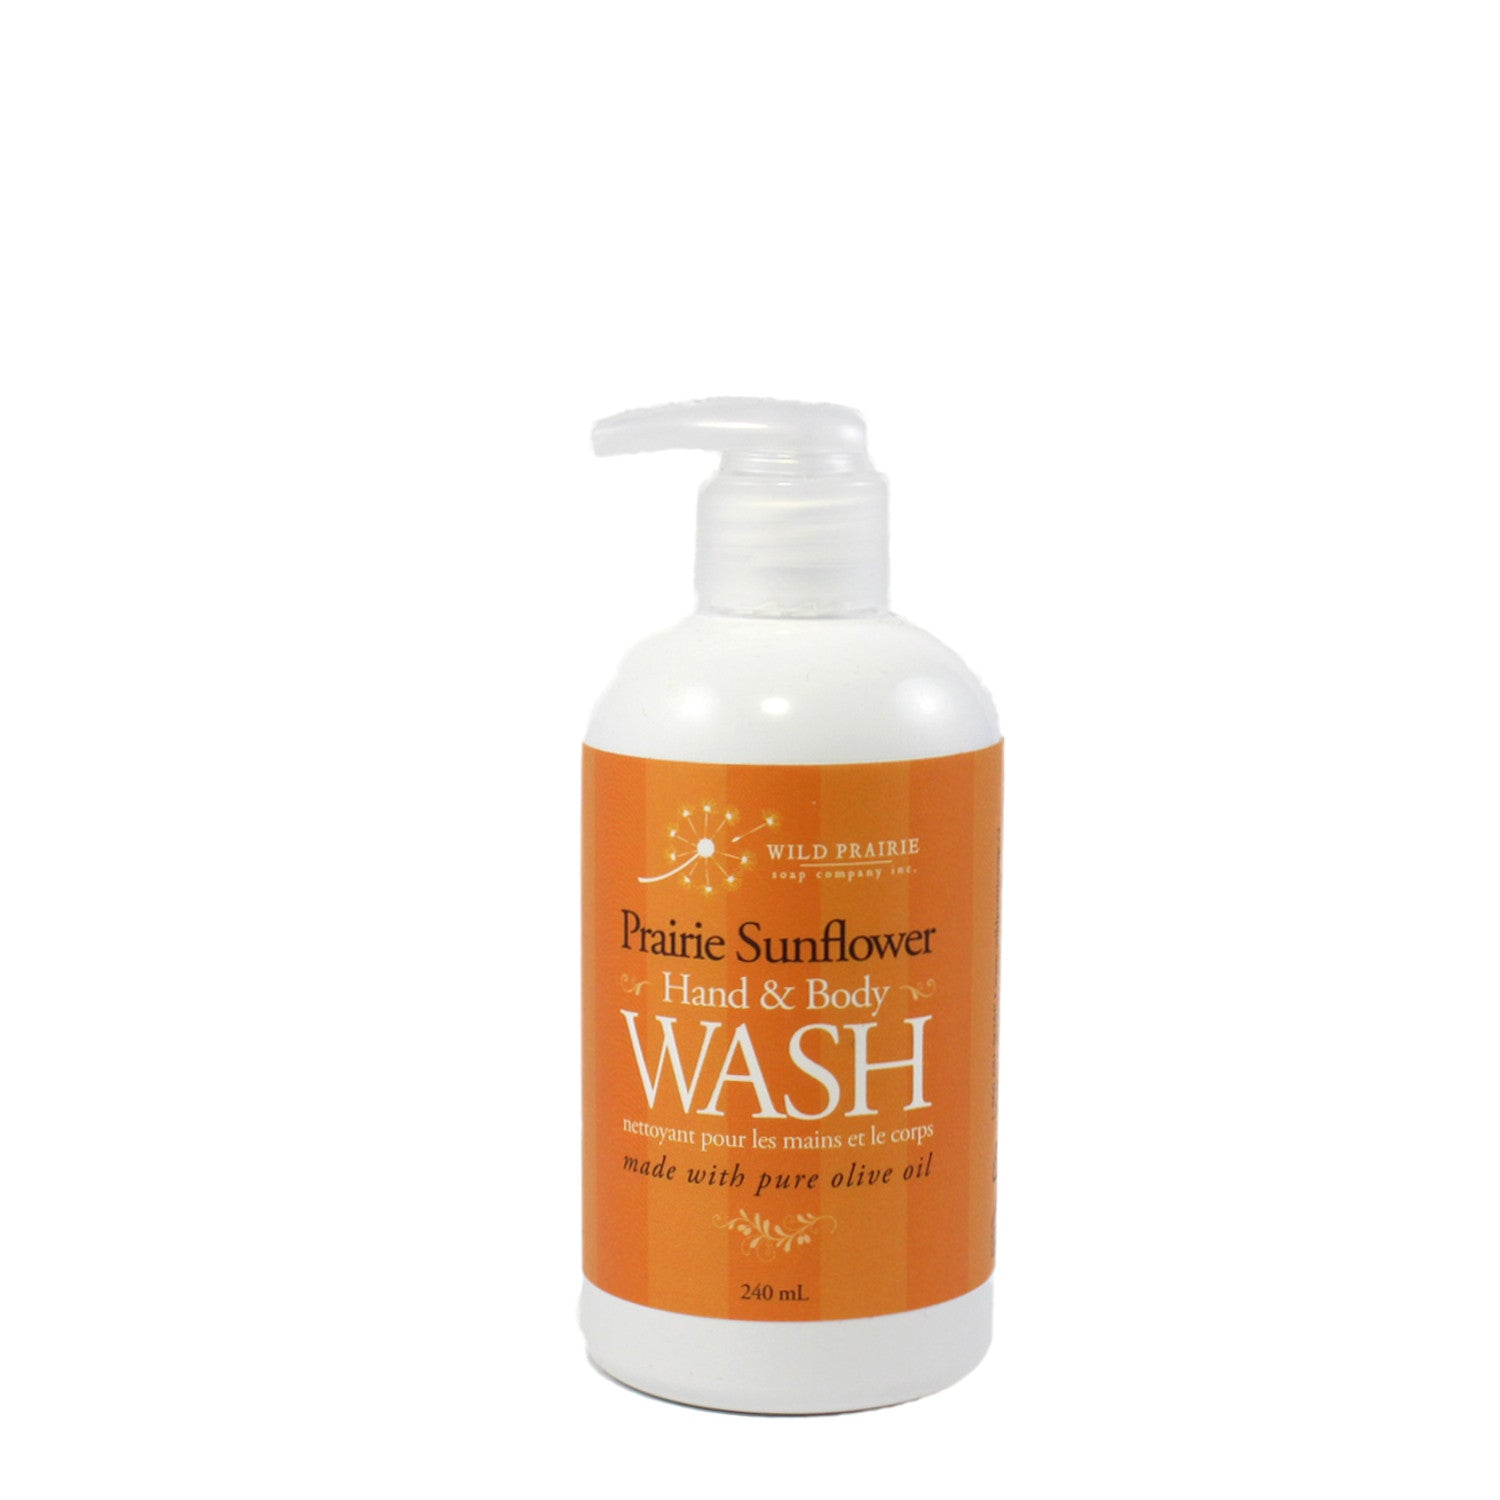 Prairie Sunflower Hand & Body Wash